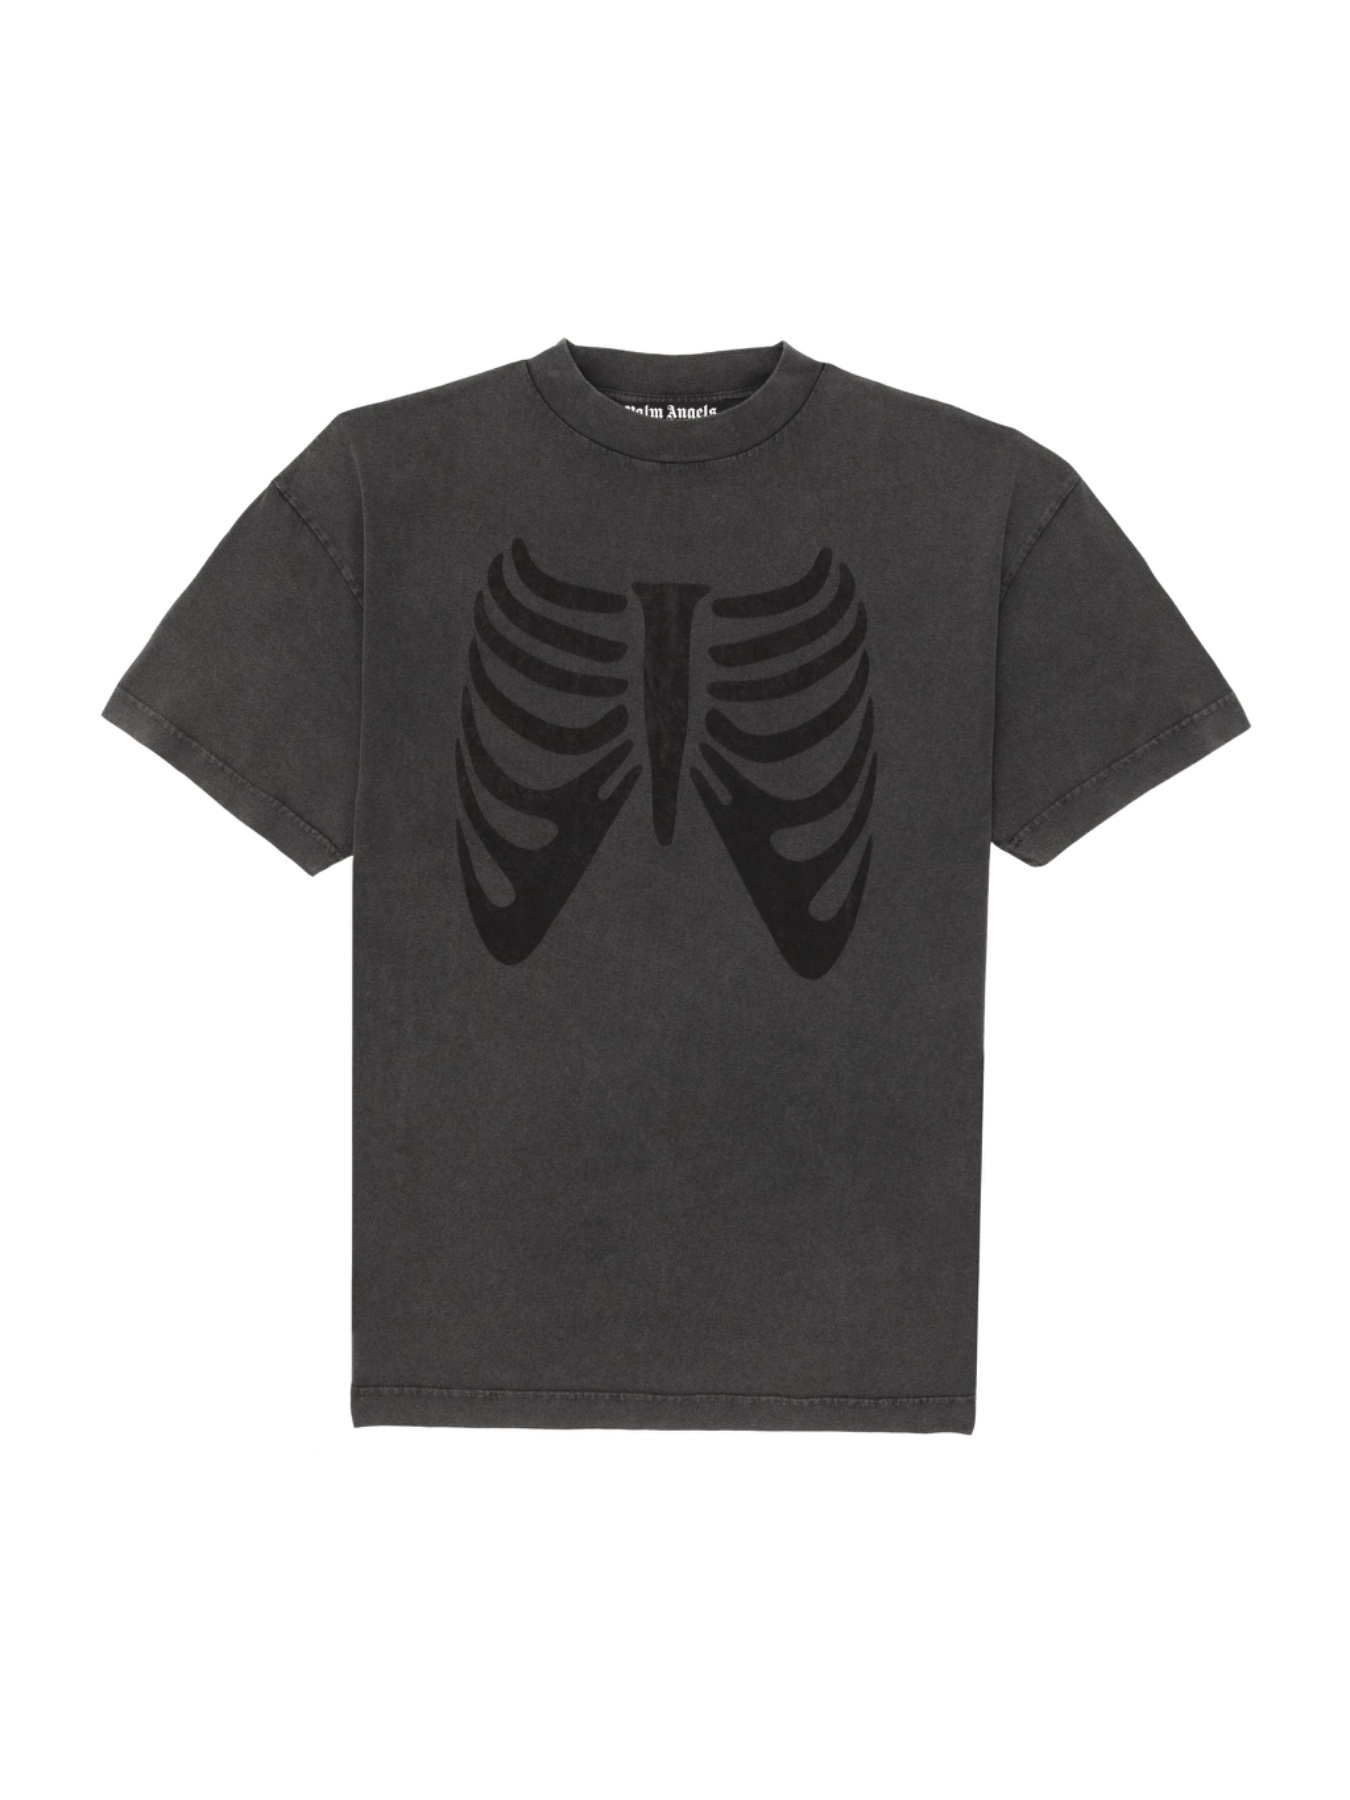 Palm Angels Halloween 2020 Capsule Collection